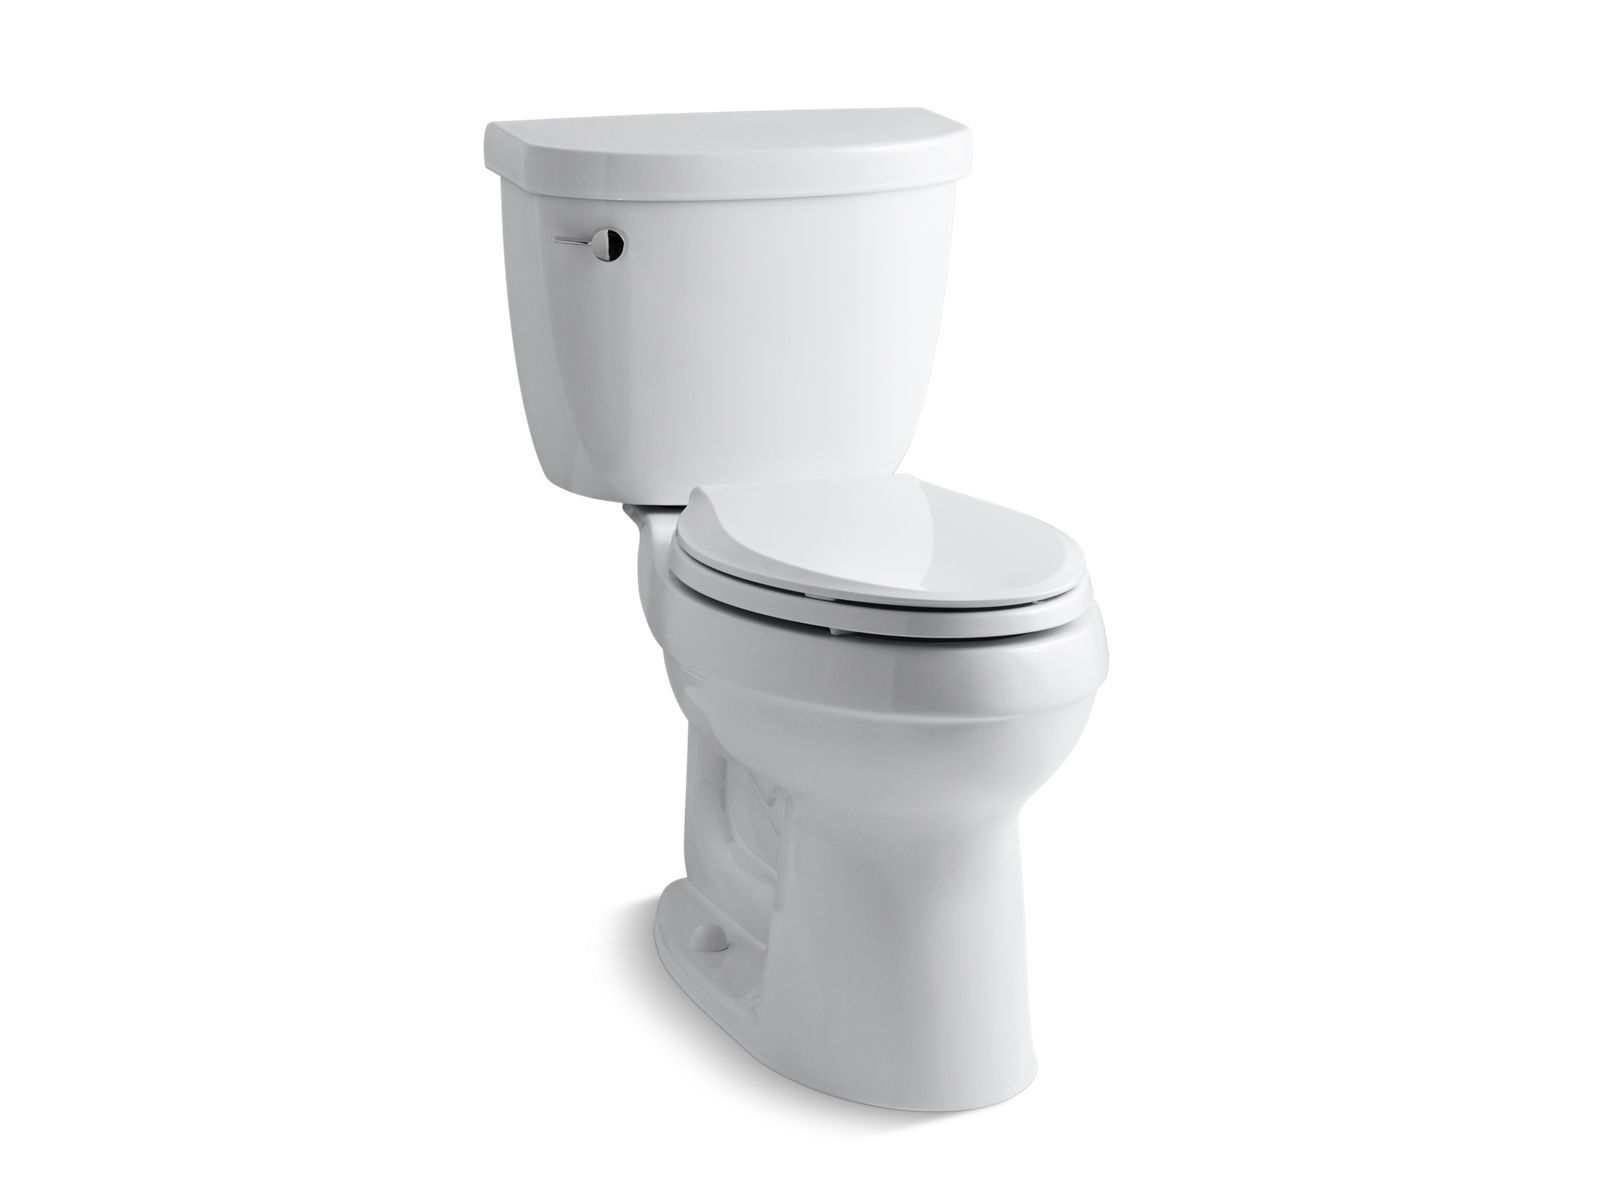 Cimarron Comfort Height Two-Piece Elongated 1.28 GPF Toilet with AquaPiston Flush Technology and Left-Hand Trip Lever